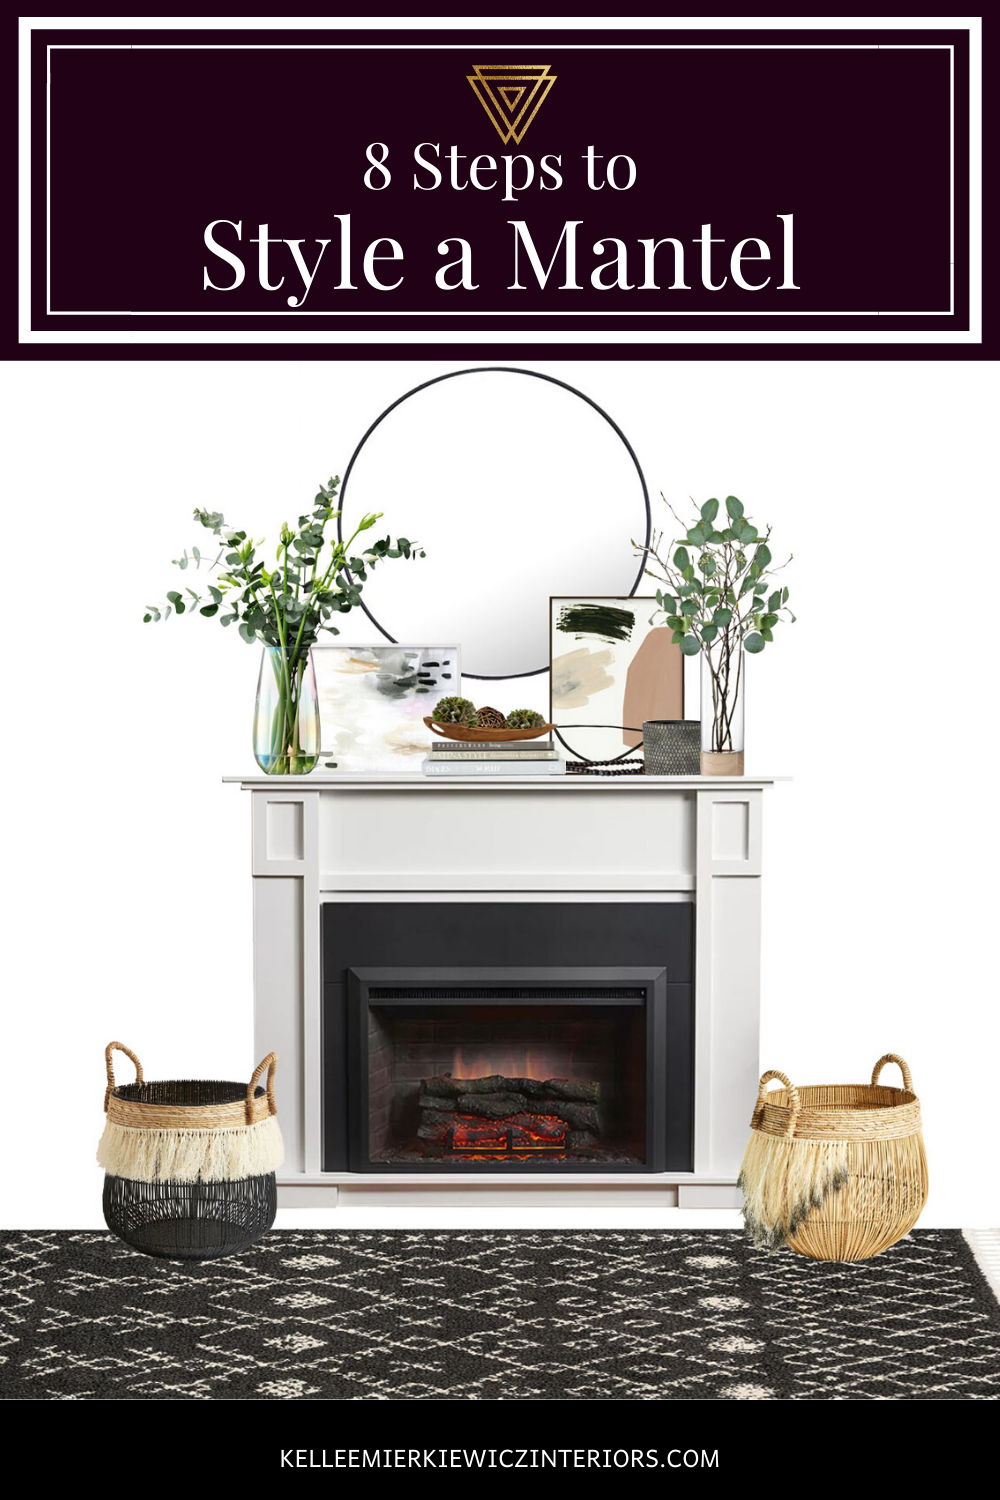 How To Style A Mantel Kellee Mierkiewicz Interiors In 2020 Small Living Room Decor Living Room Mirrors Fireplace Mantel Decor #small #living #room #with #fireplace #decorating #ideas